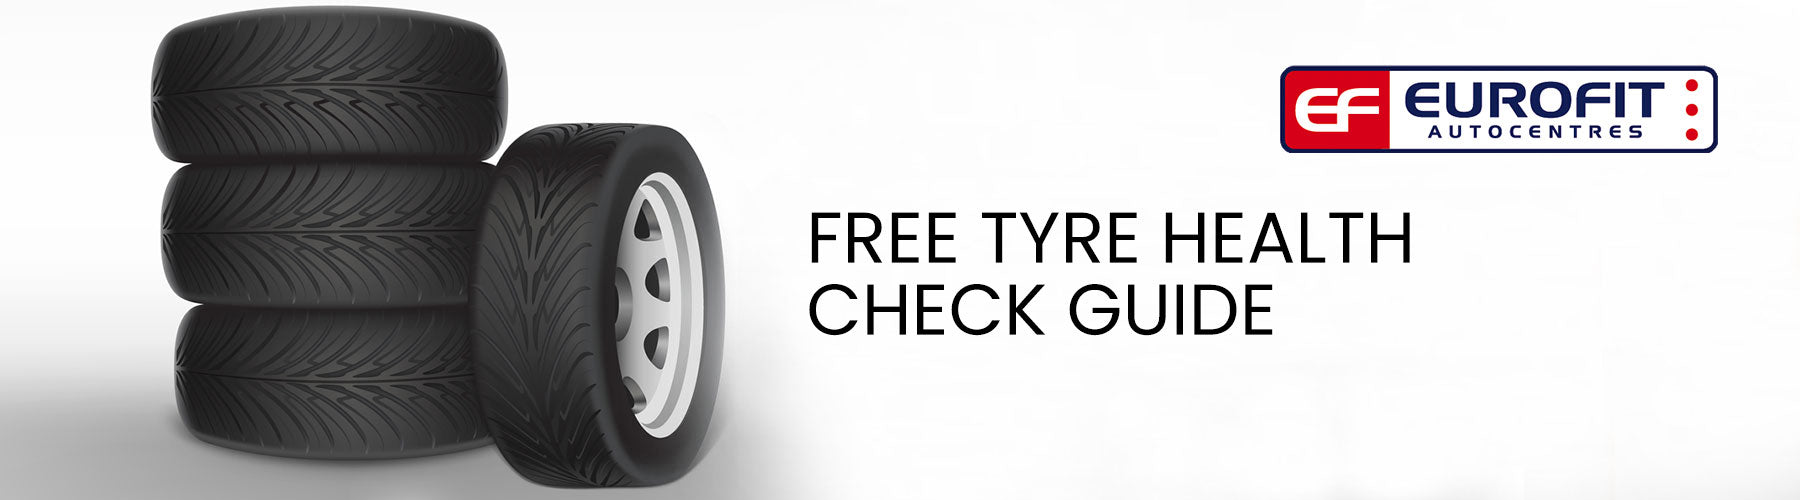 Our Free Tyre Health Check Guide